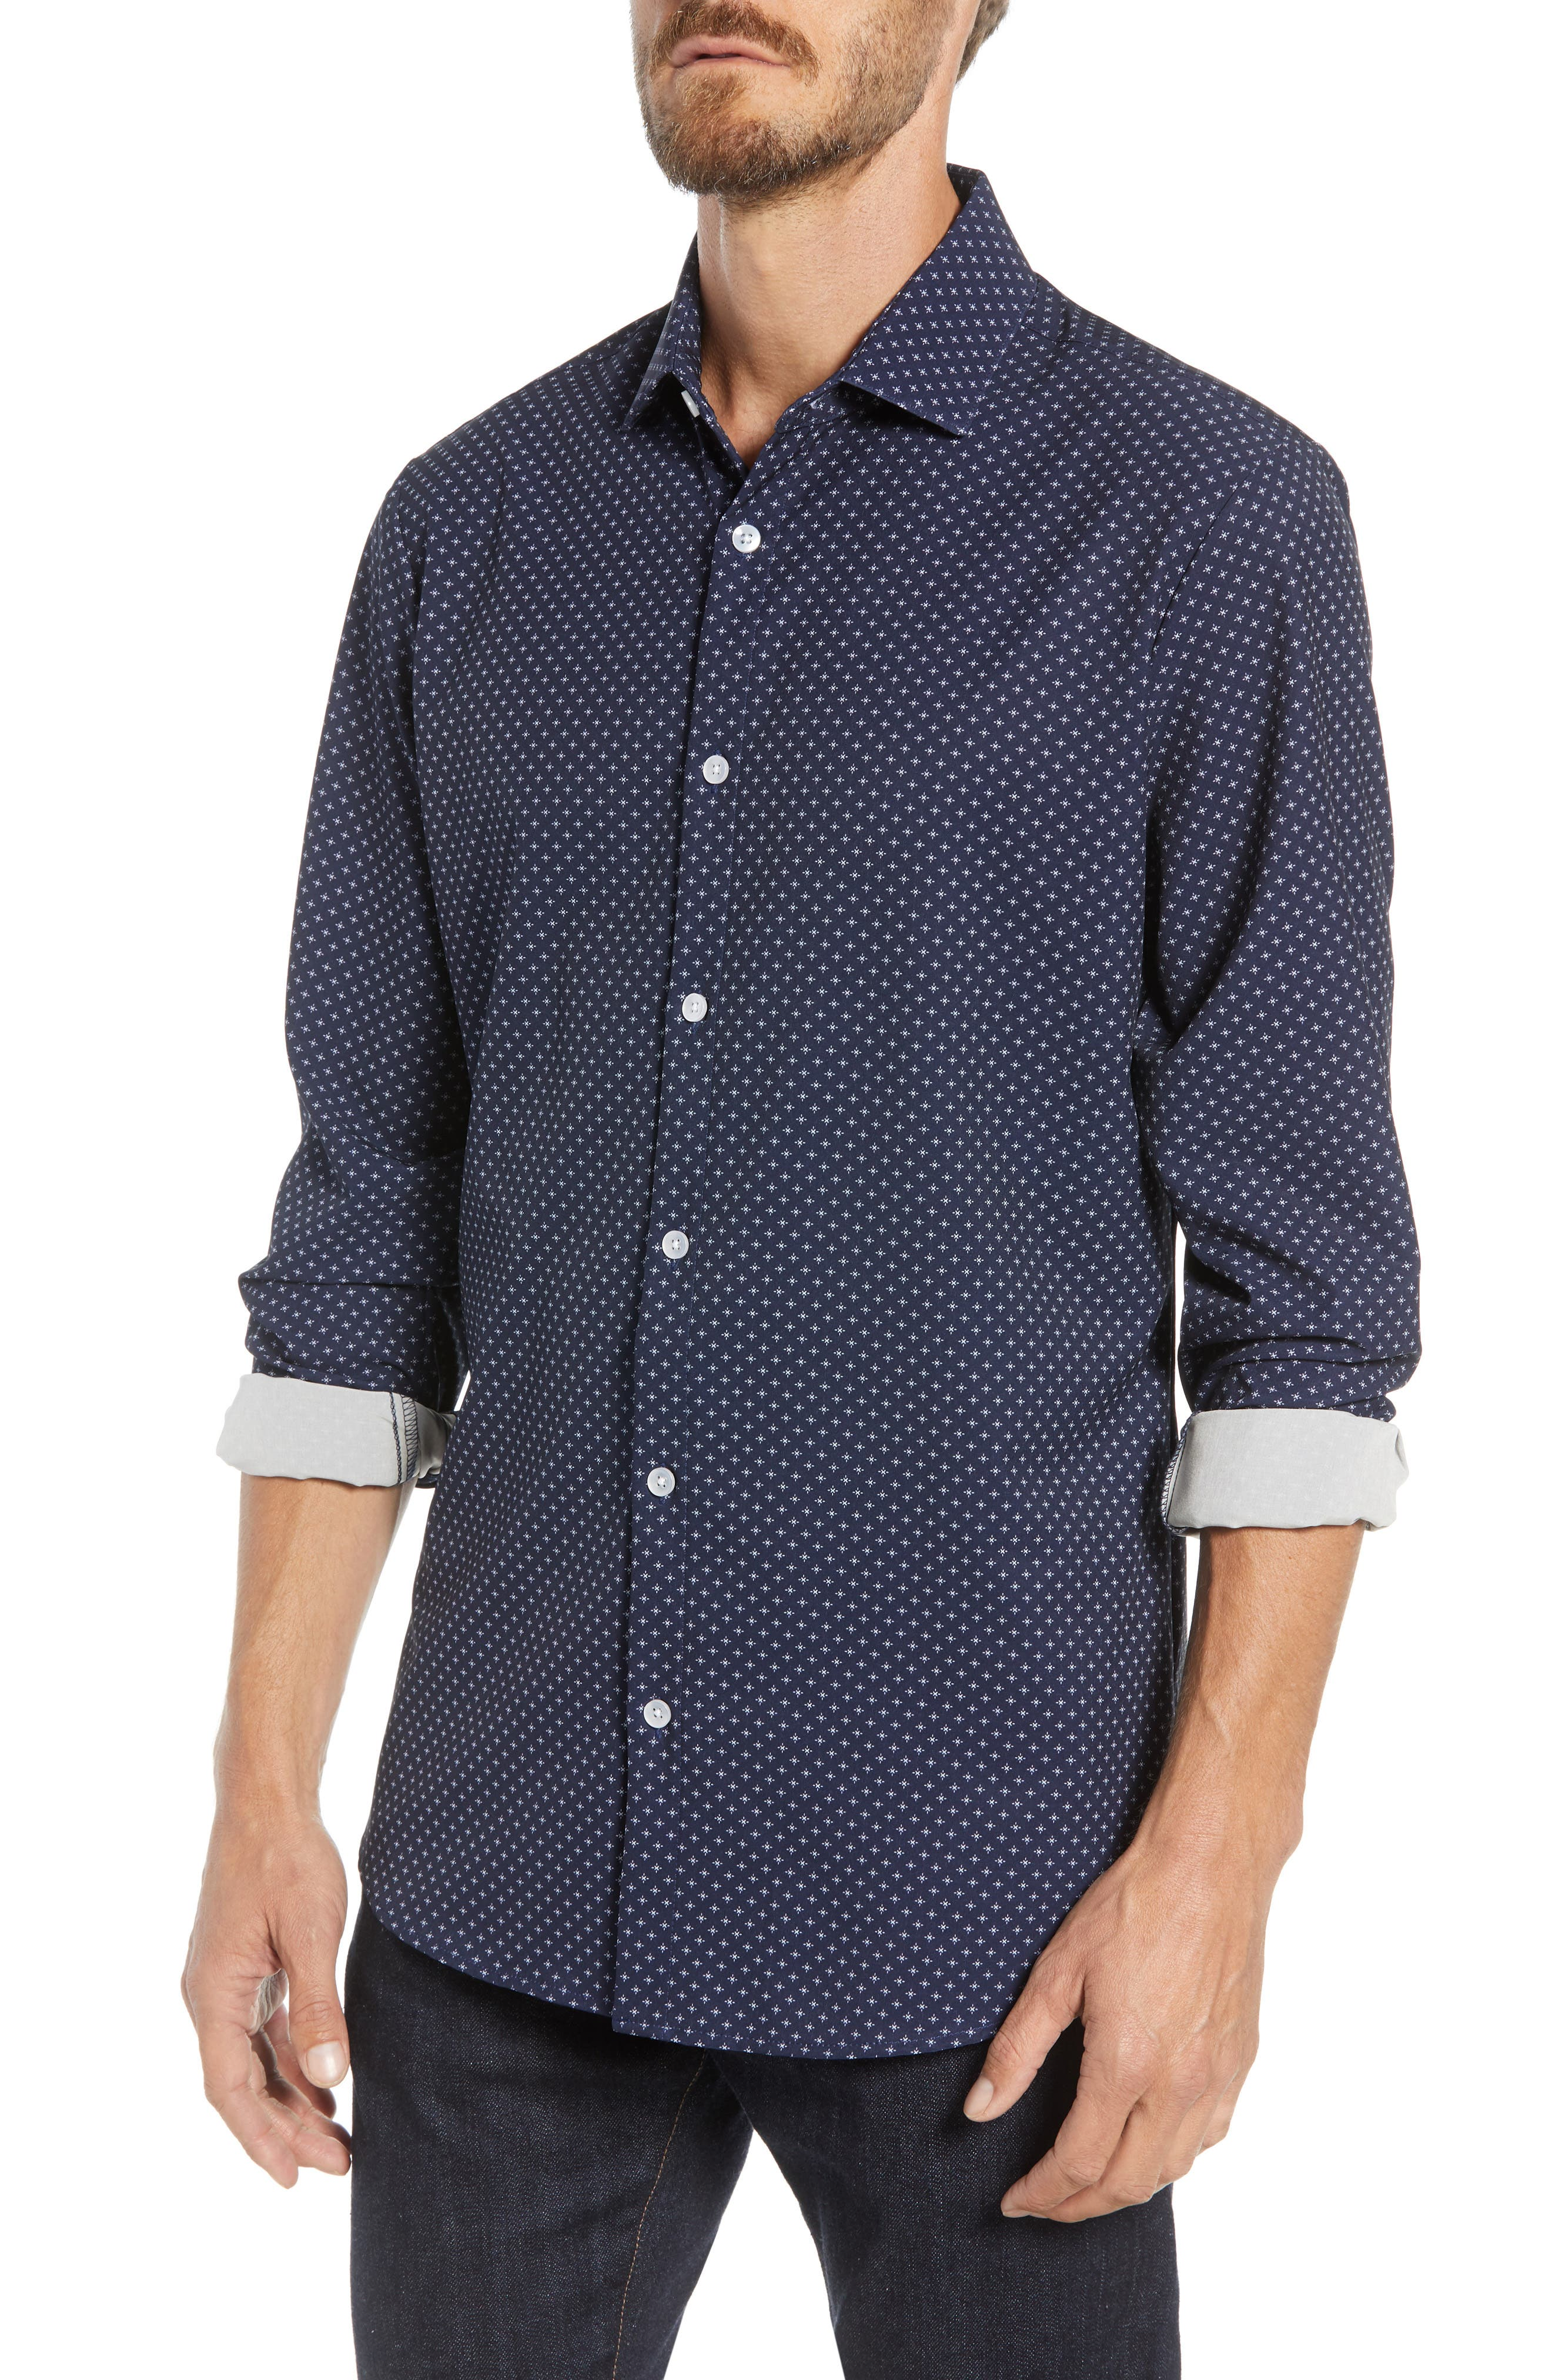 Ballard Regular Fit Print Performance Sport Shirt,                         Main,                         color, NAVY